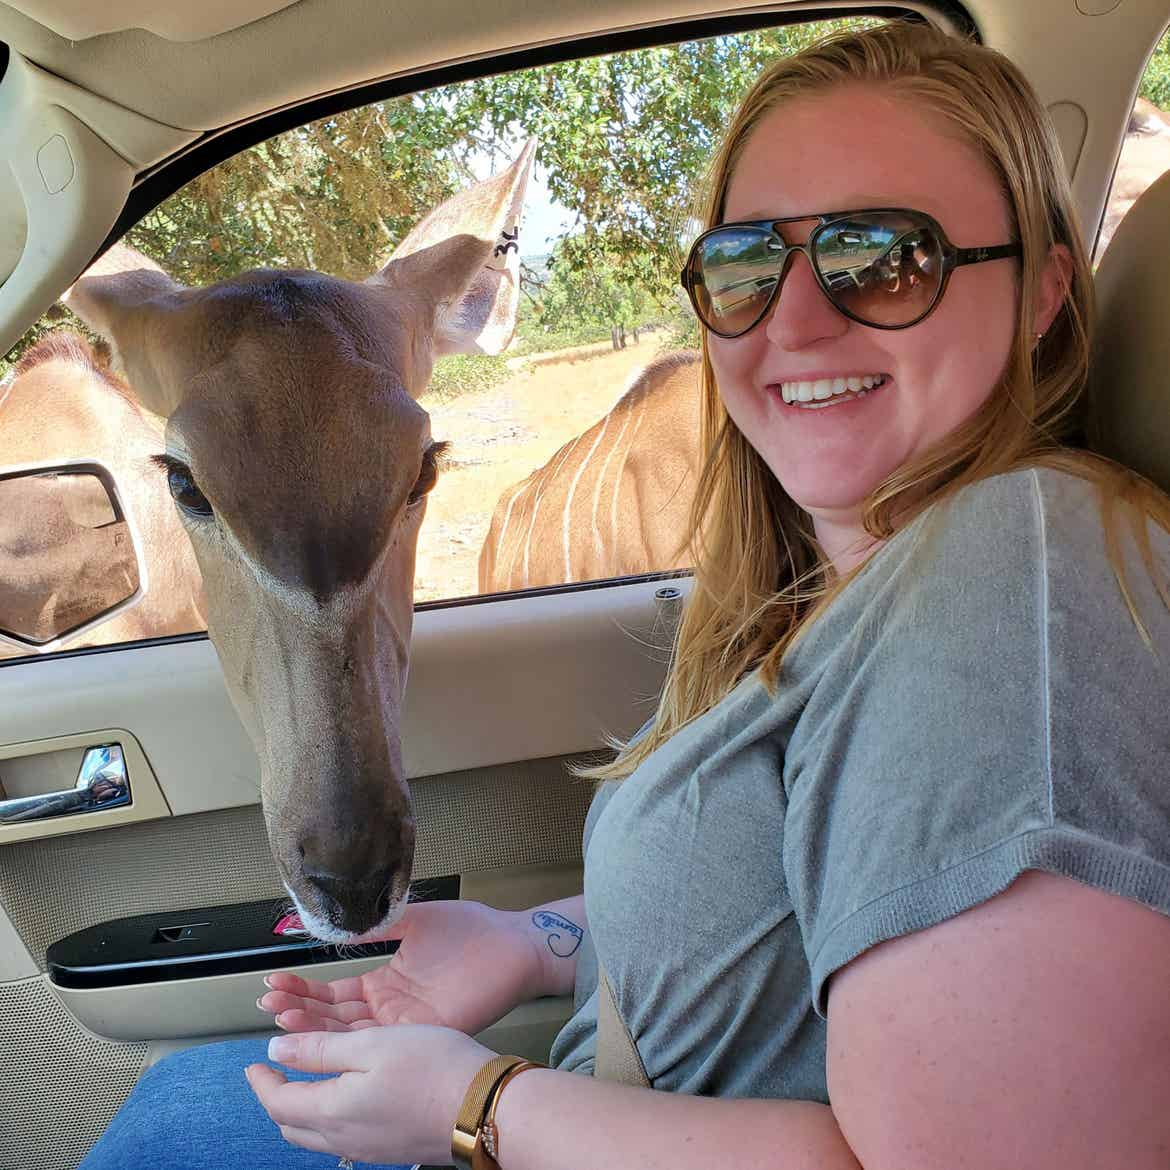 Kristen Connelly, assistant manager of guest engagement at Hill Country Resort, sits in her vehicle wearing a grey shirt and brown sunglasses while the safari animals pop their head through the passenger window to receive food.